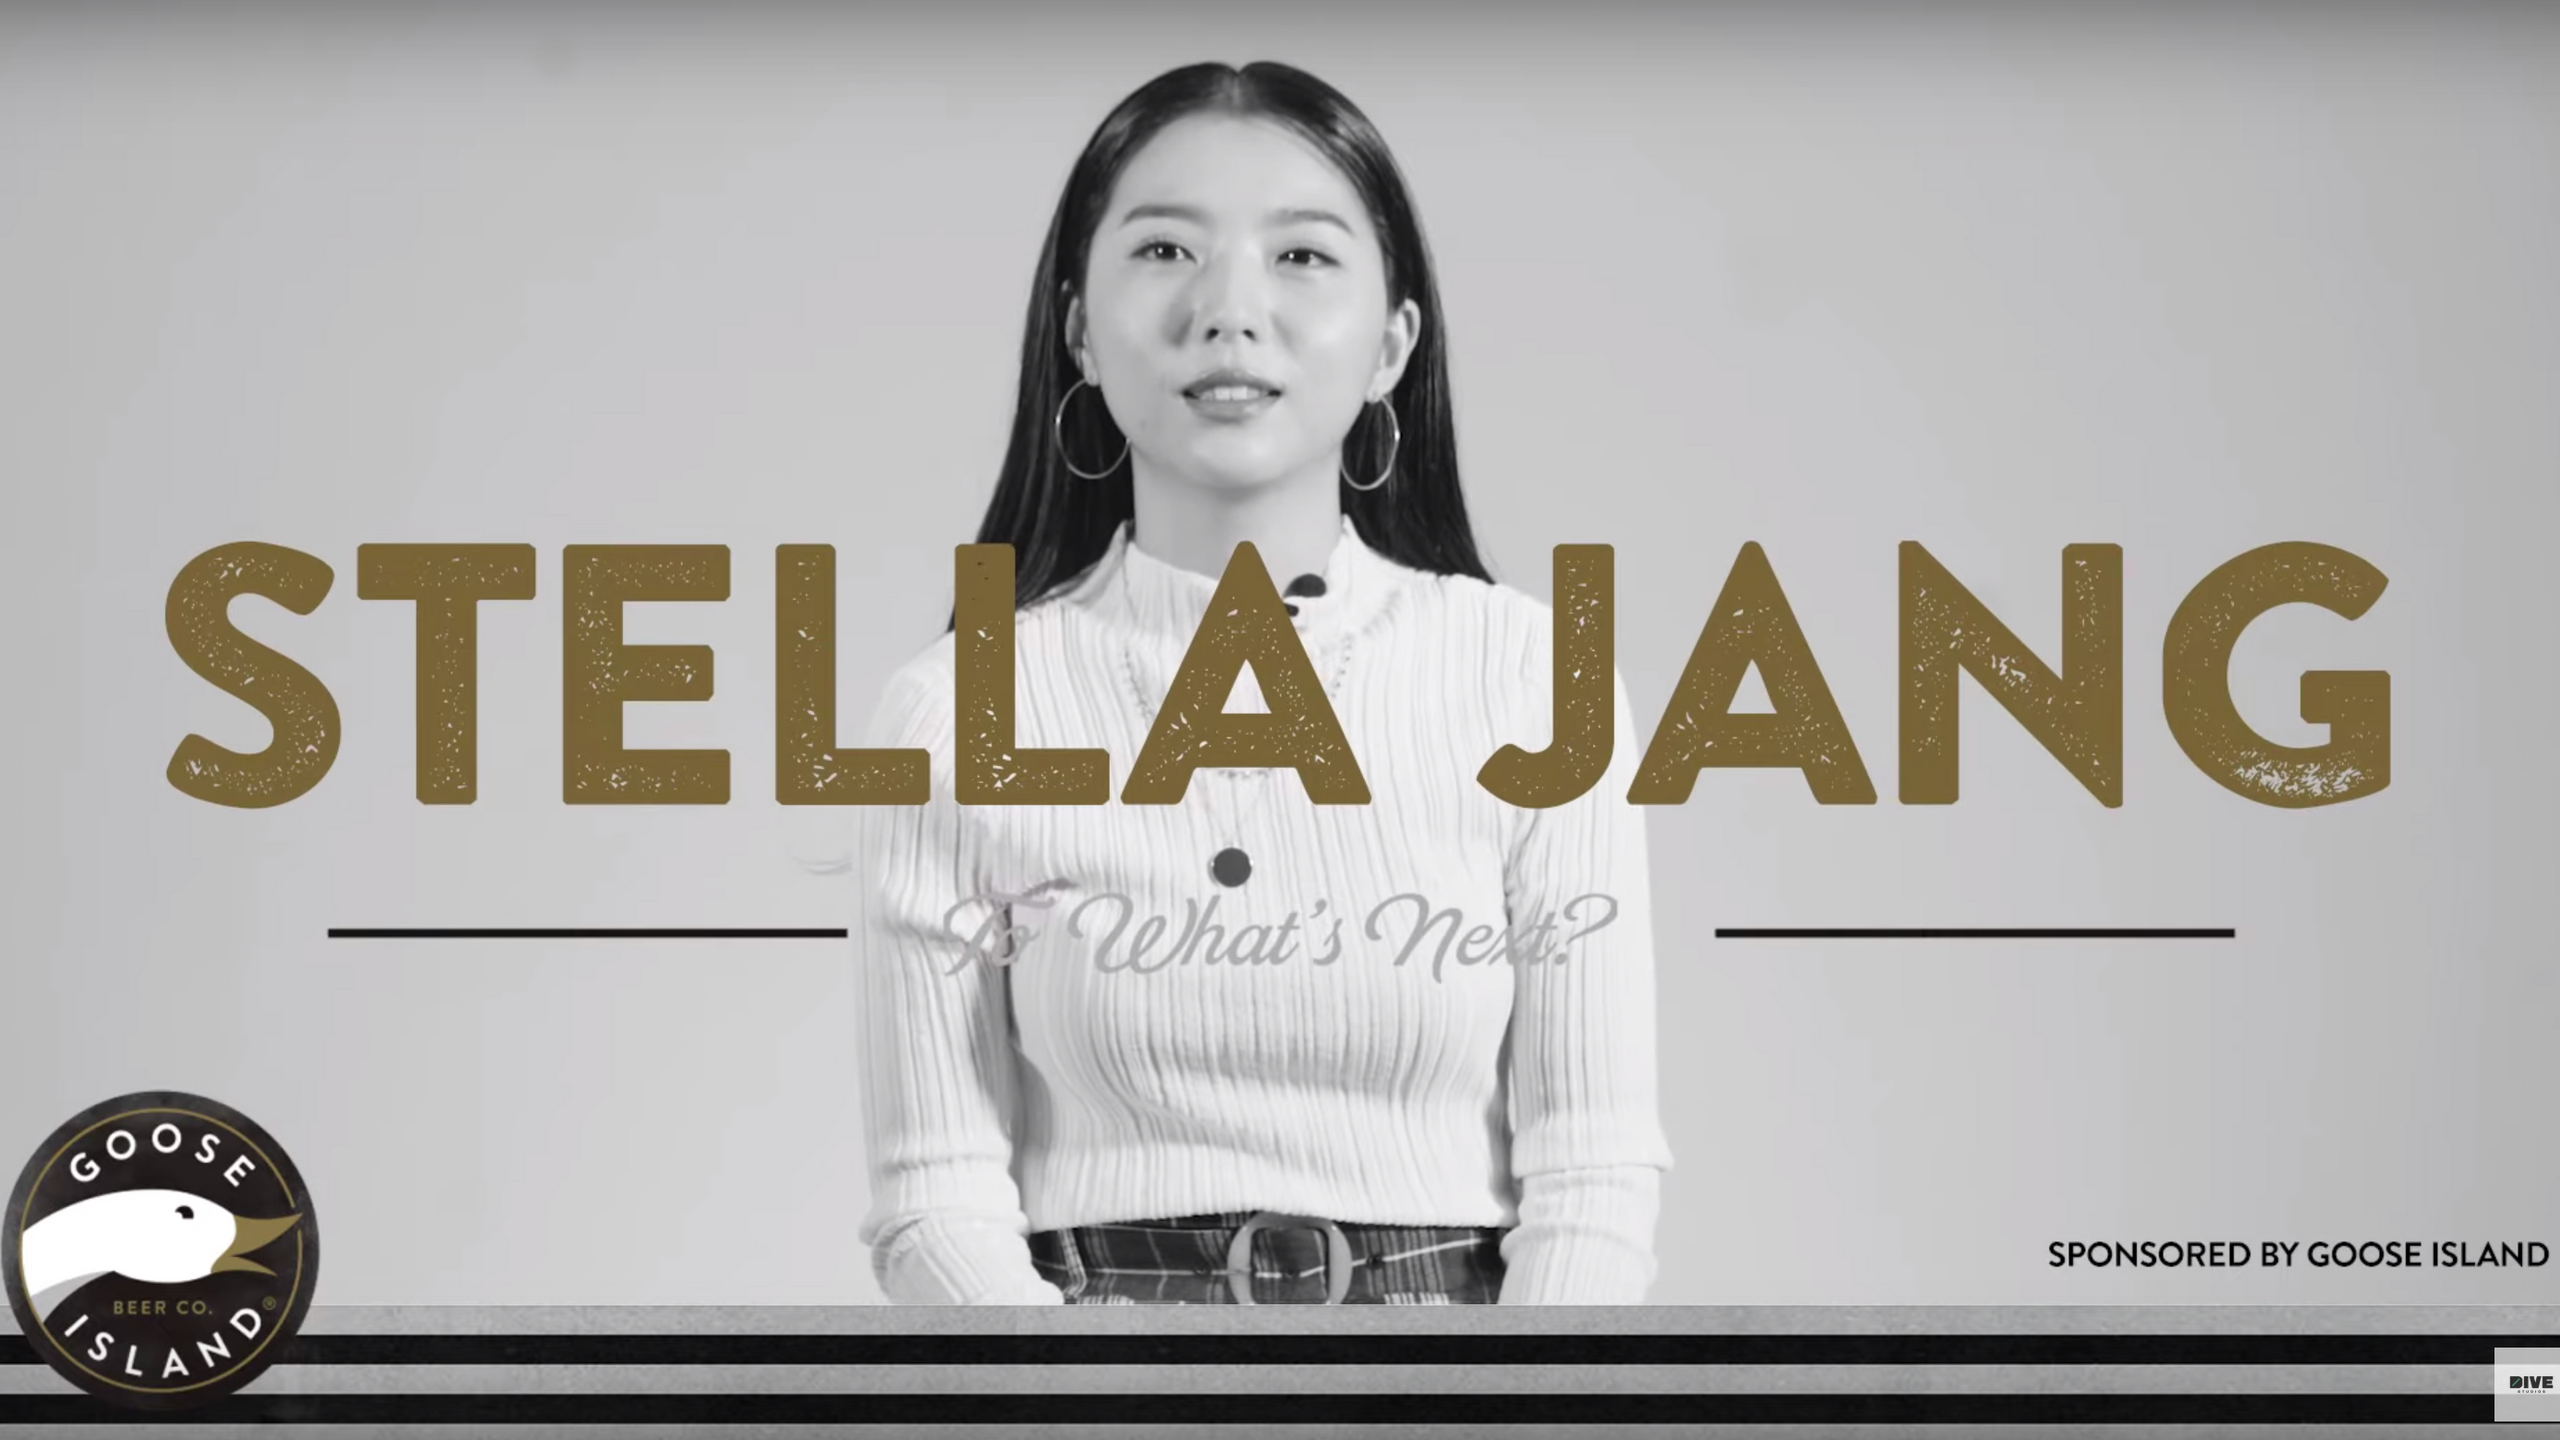 Stella Jang in Cheers to What's Next